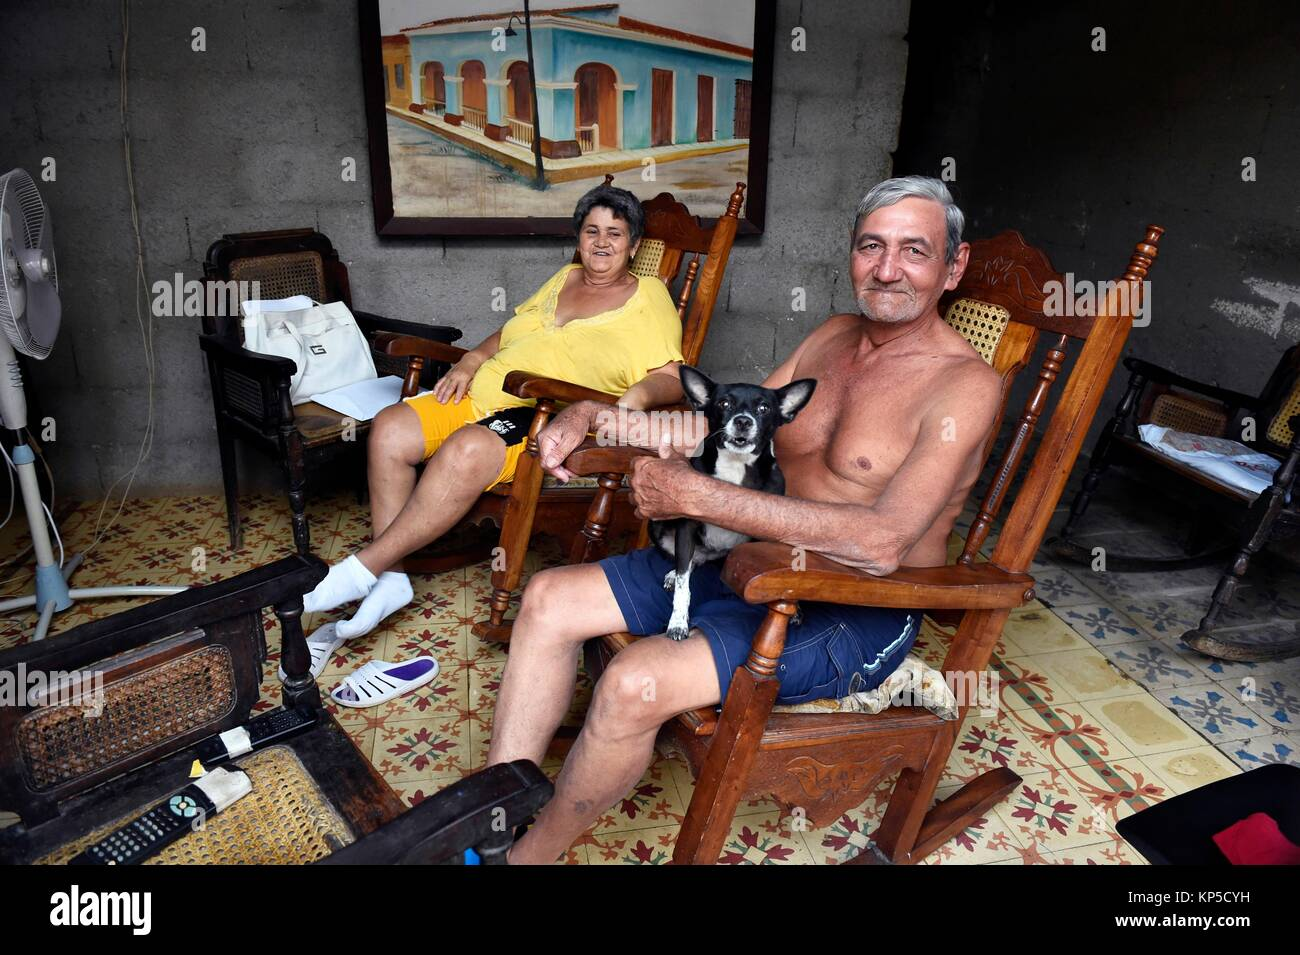 Couple at home, Remedios, Cuba. - Stock Image